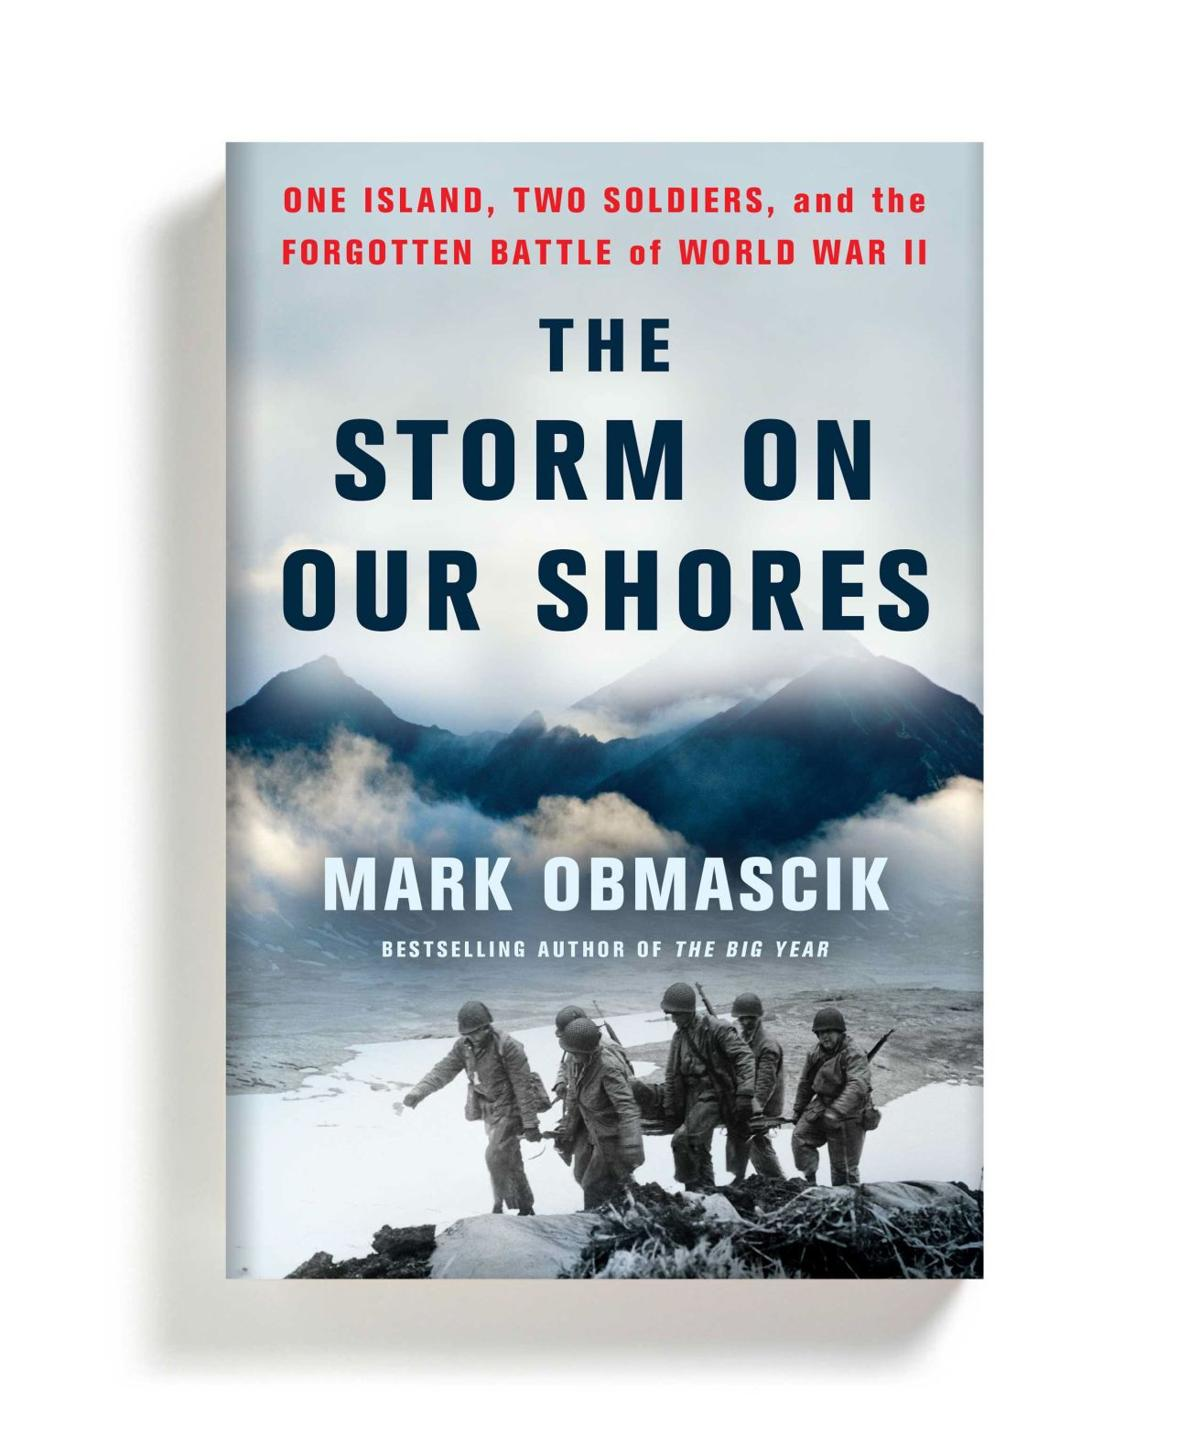 """The Storm on Our Shores"" by Mark Obmascik."